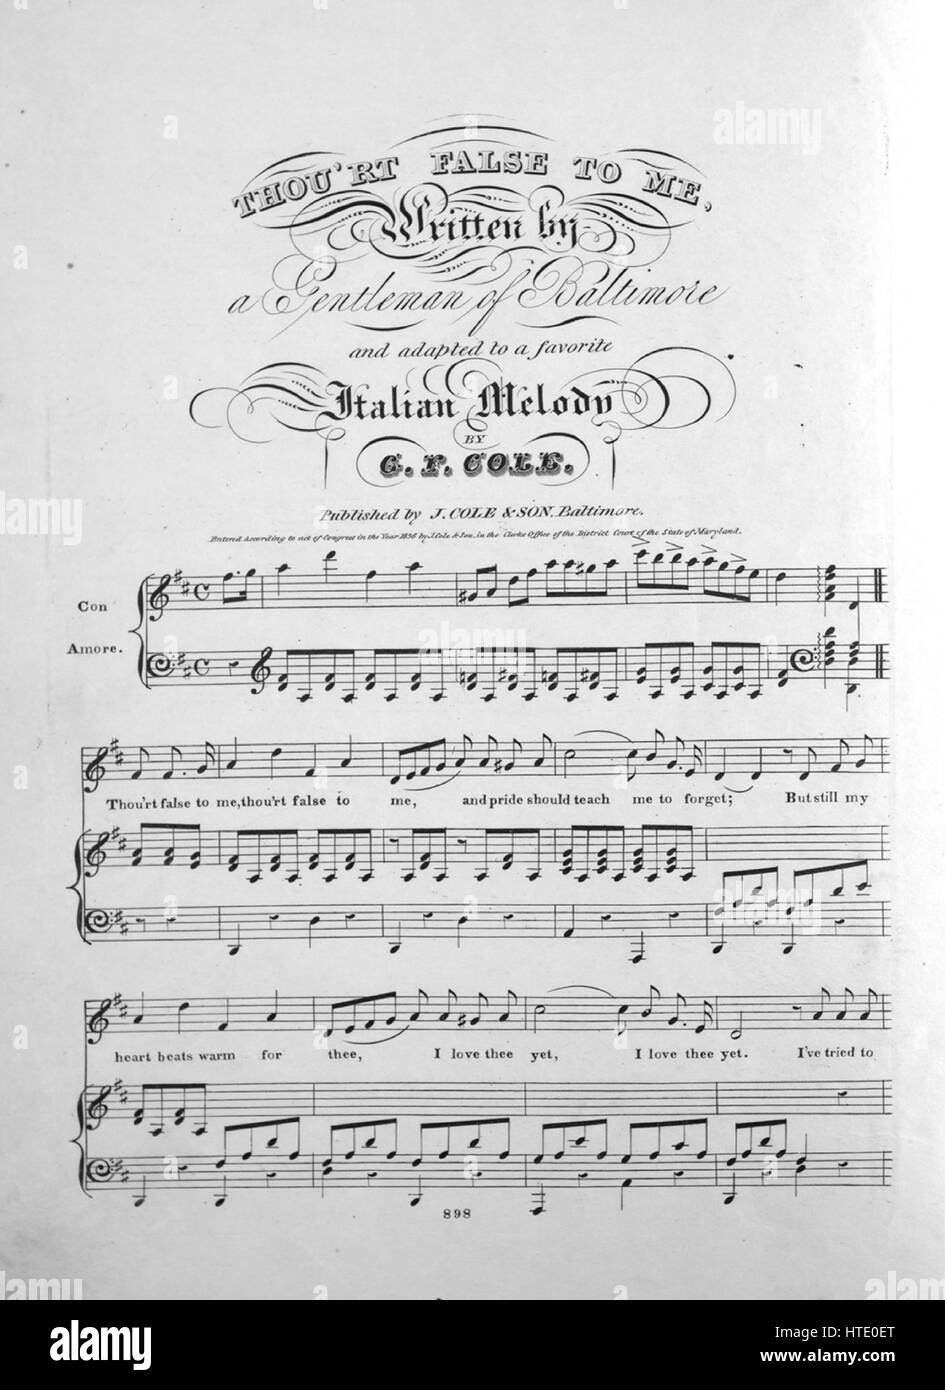 Sheet Music Cover Image Of The Song Thourt False To Me With